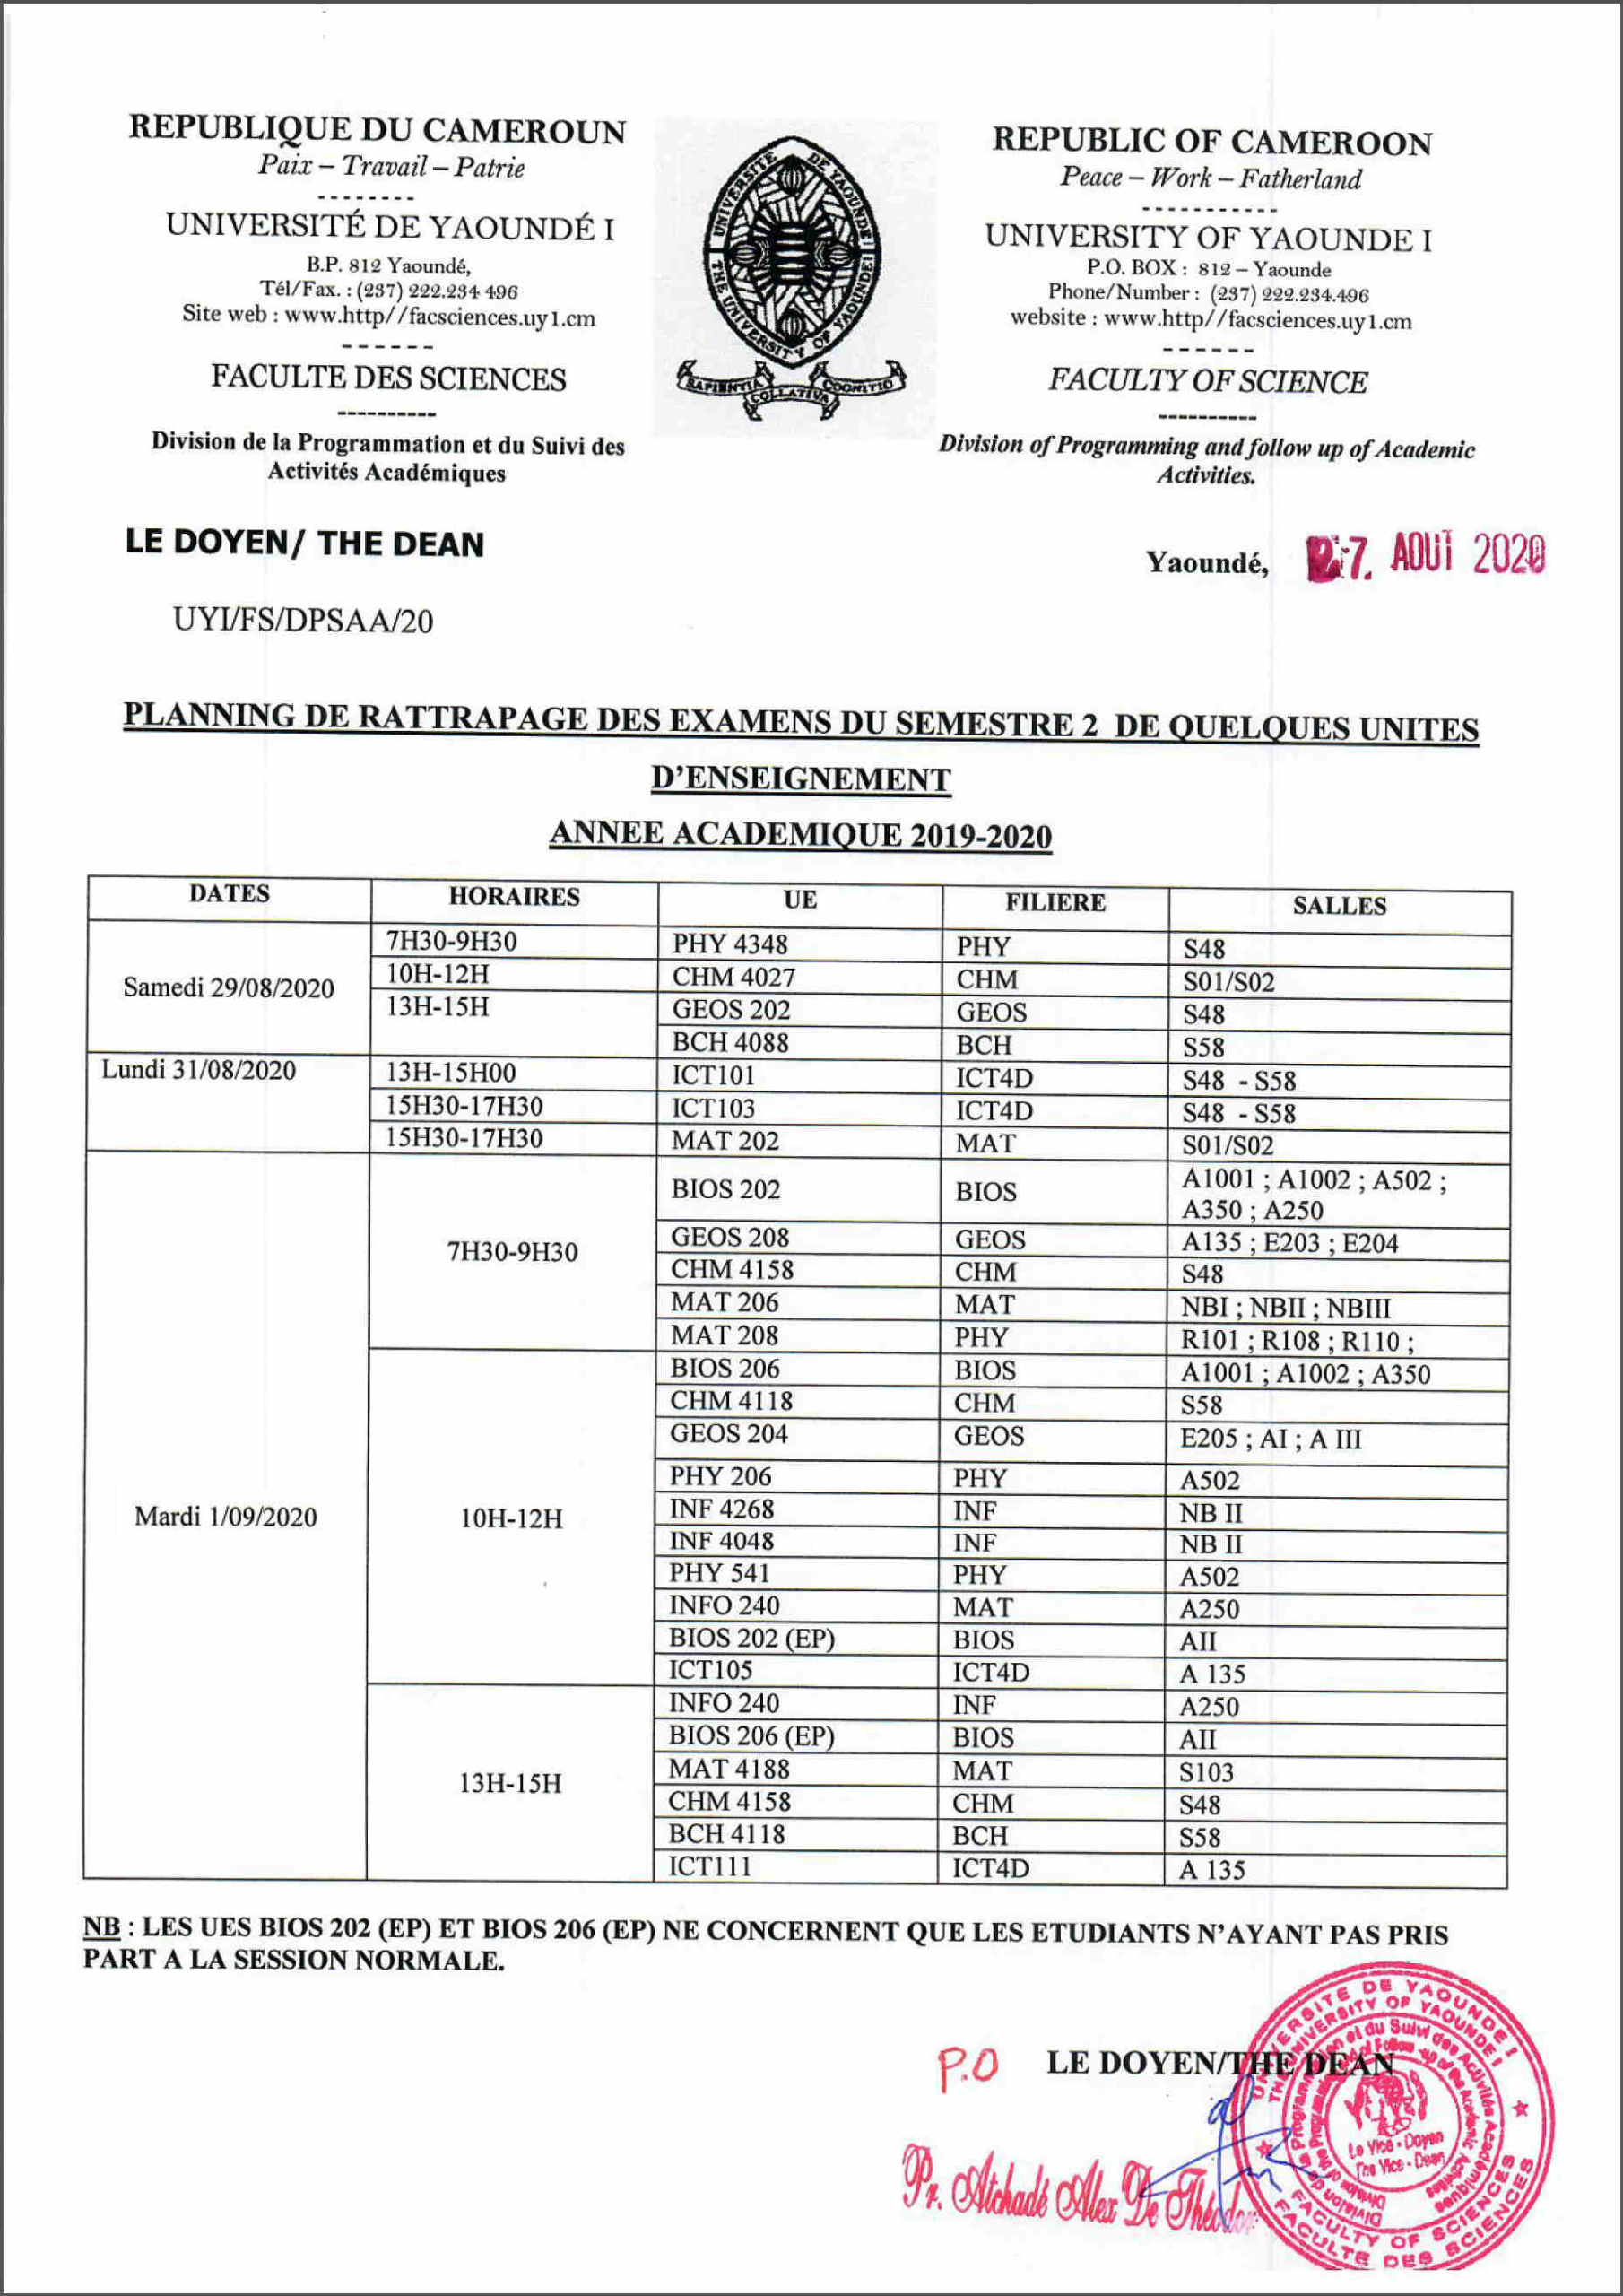 SCHEDULE FOR THE RETURN OF THE EXAMS OF SEMESTER 2 L2 2019-2020